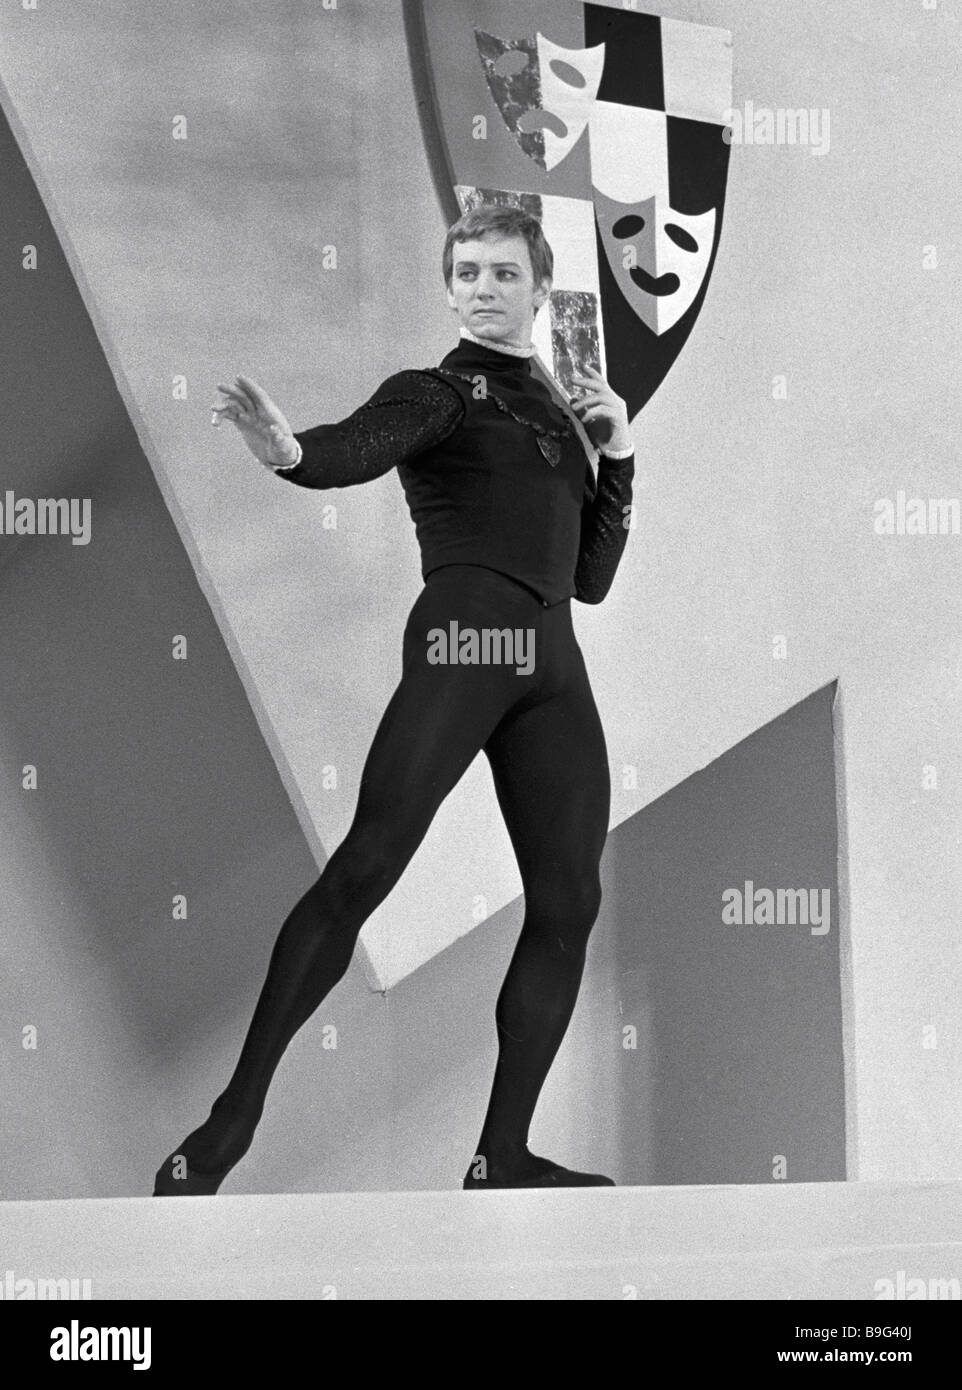 Ballet dancer Maris Liepa in a TV ballet film Hamlet - Stock Image